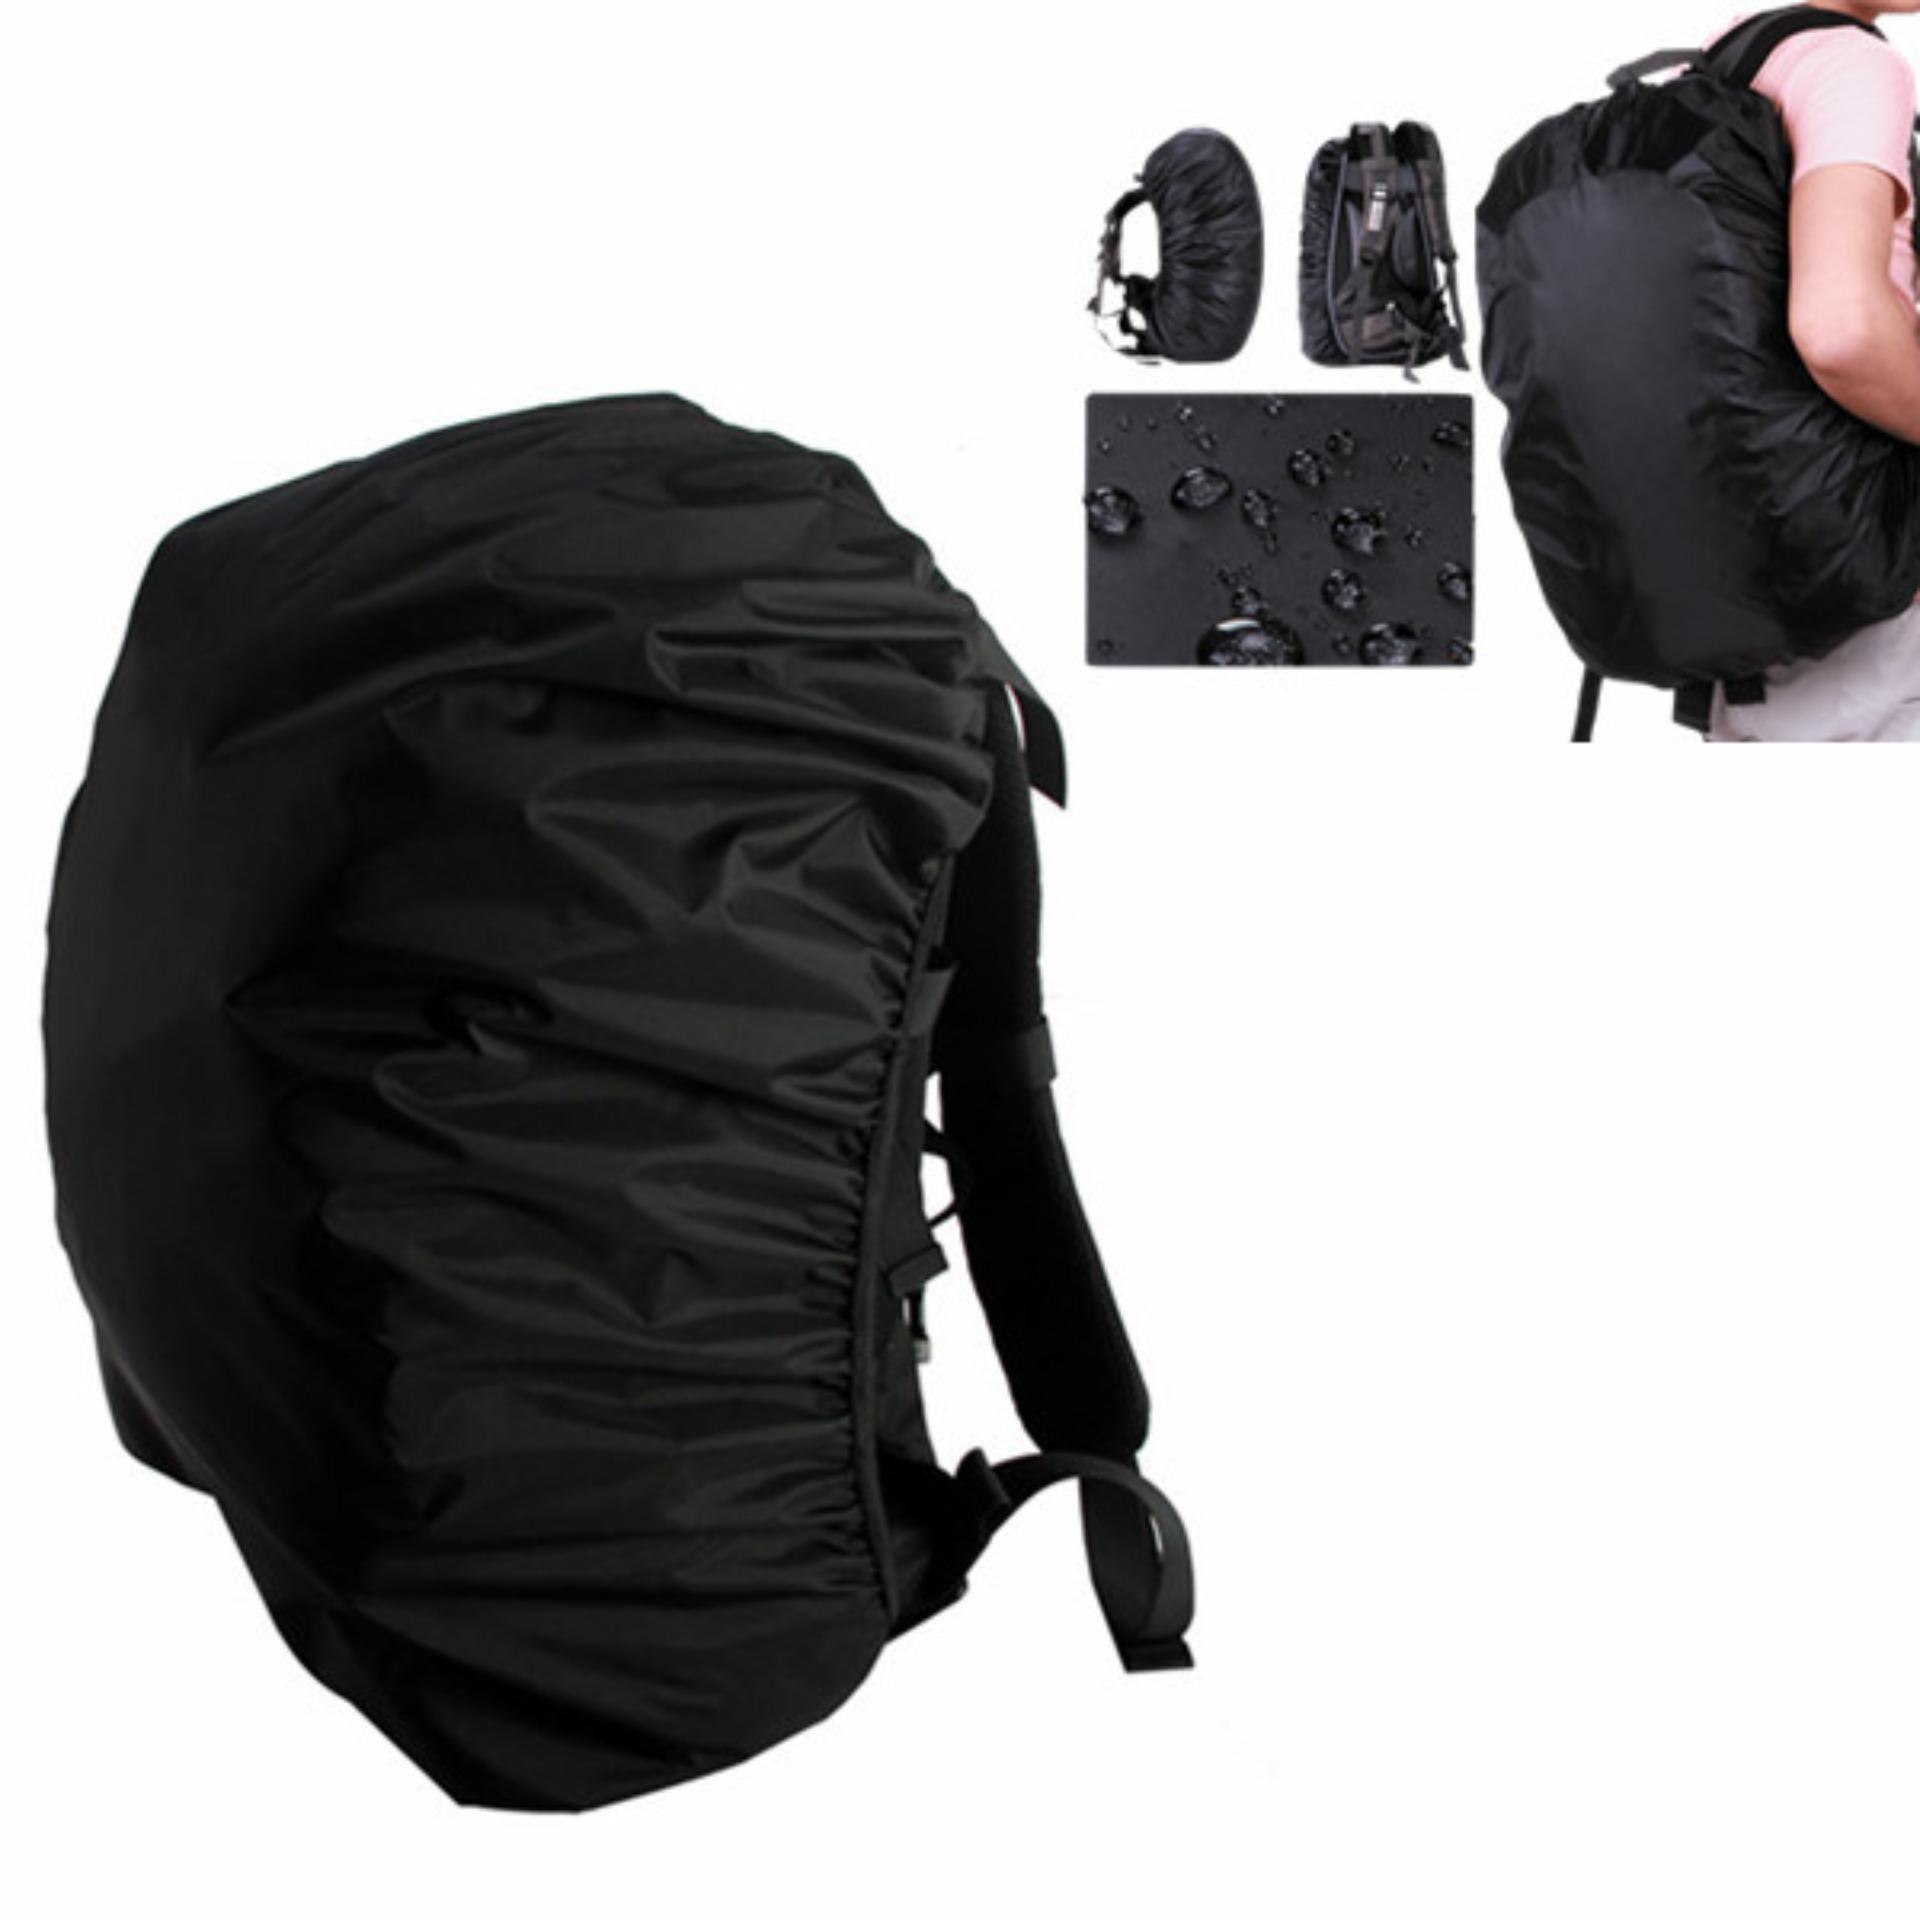 85a1c6e29c Outdoor Waterproof Backpack Rucksack Rain Cover Bag Rainproof Pack Cover  for Camping Hiking (Black)